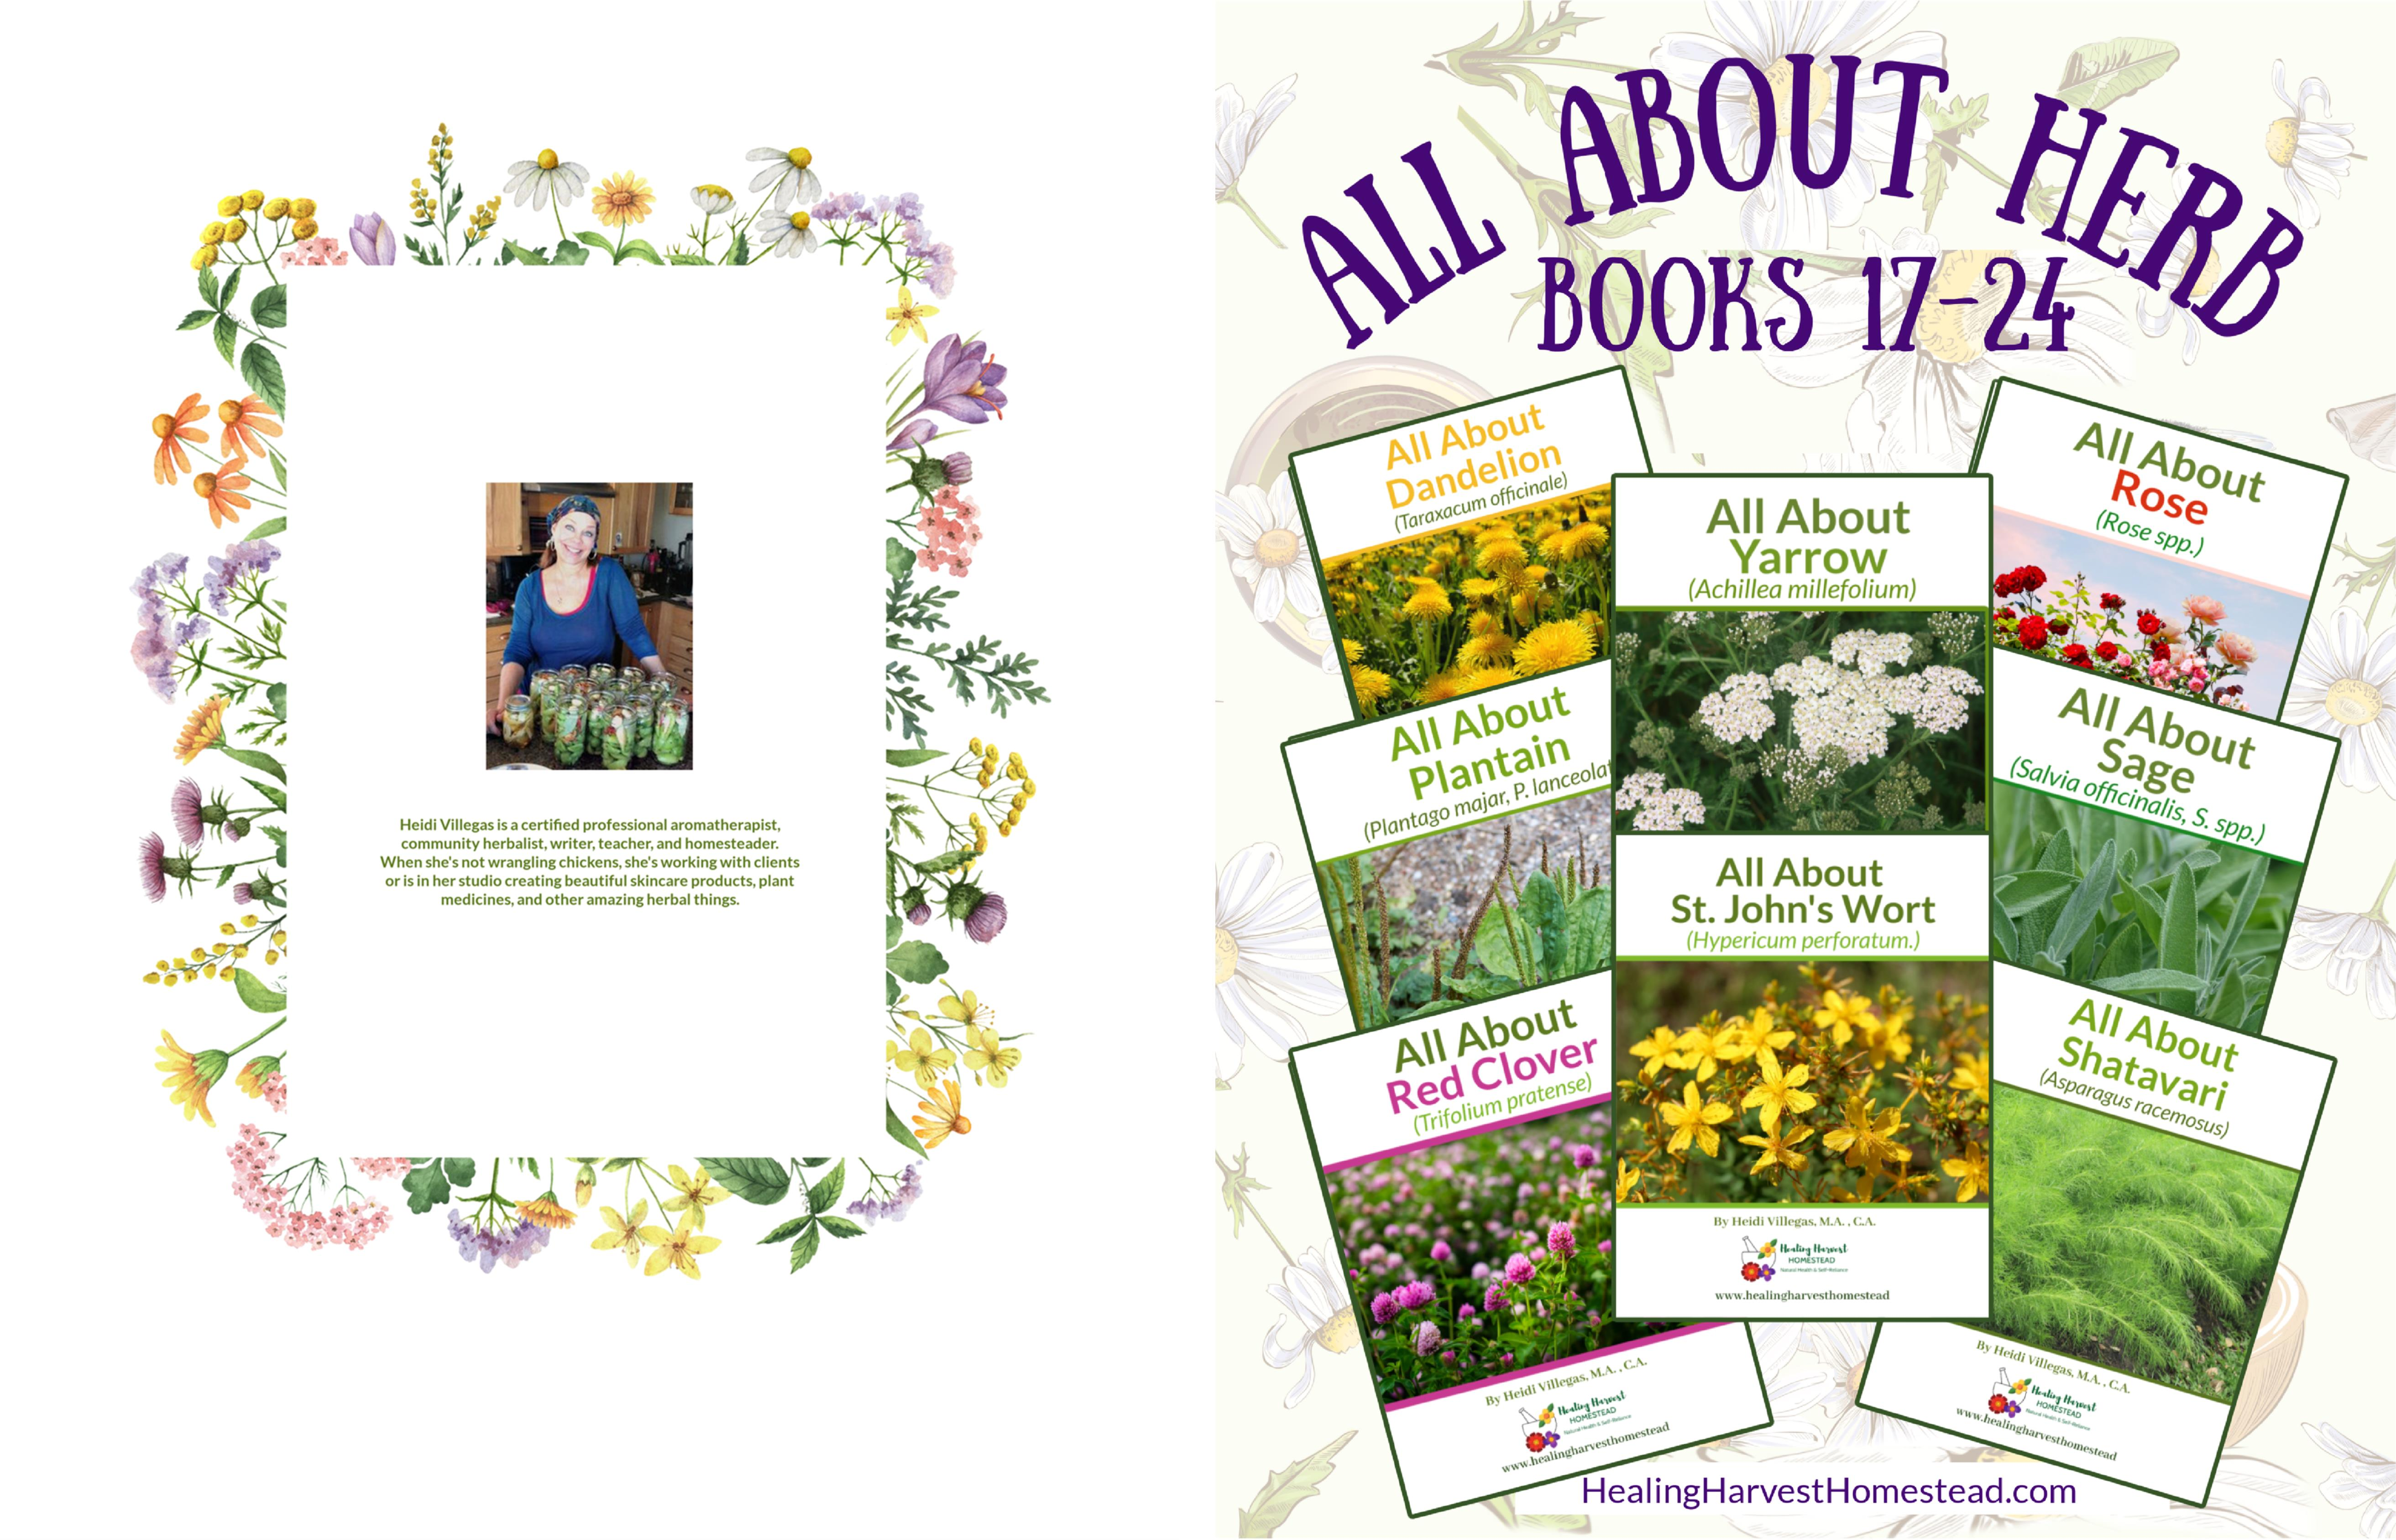 All About Herbs Books 17 - 24 cover image